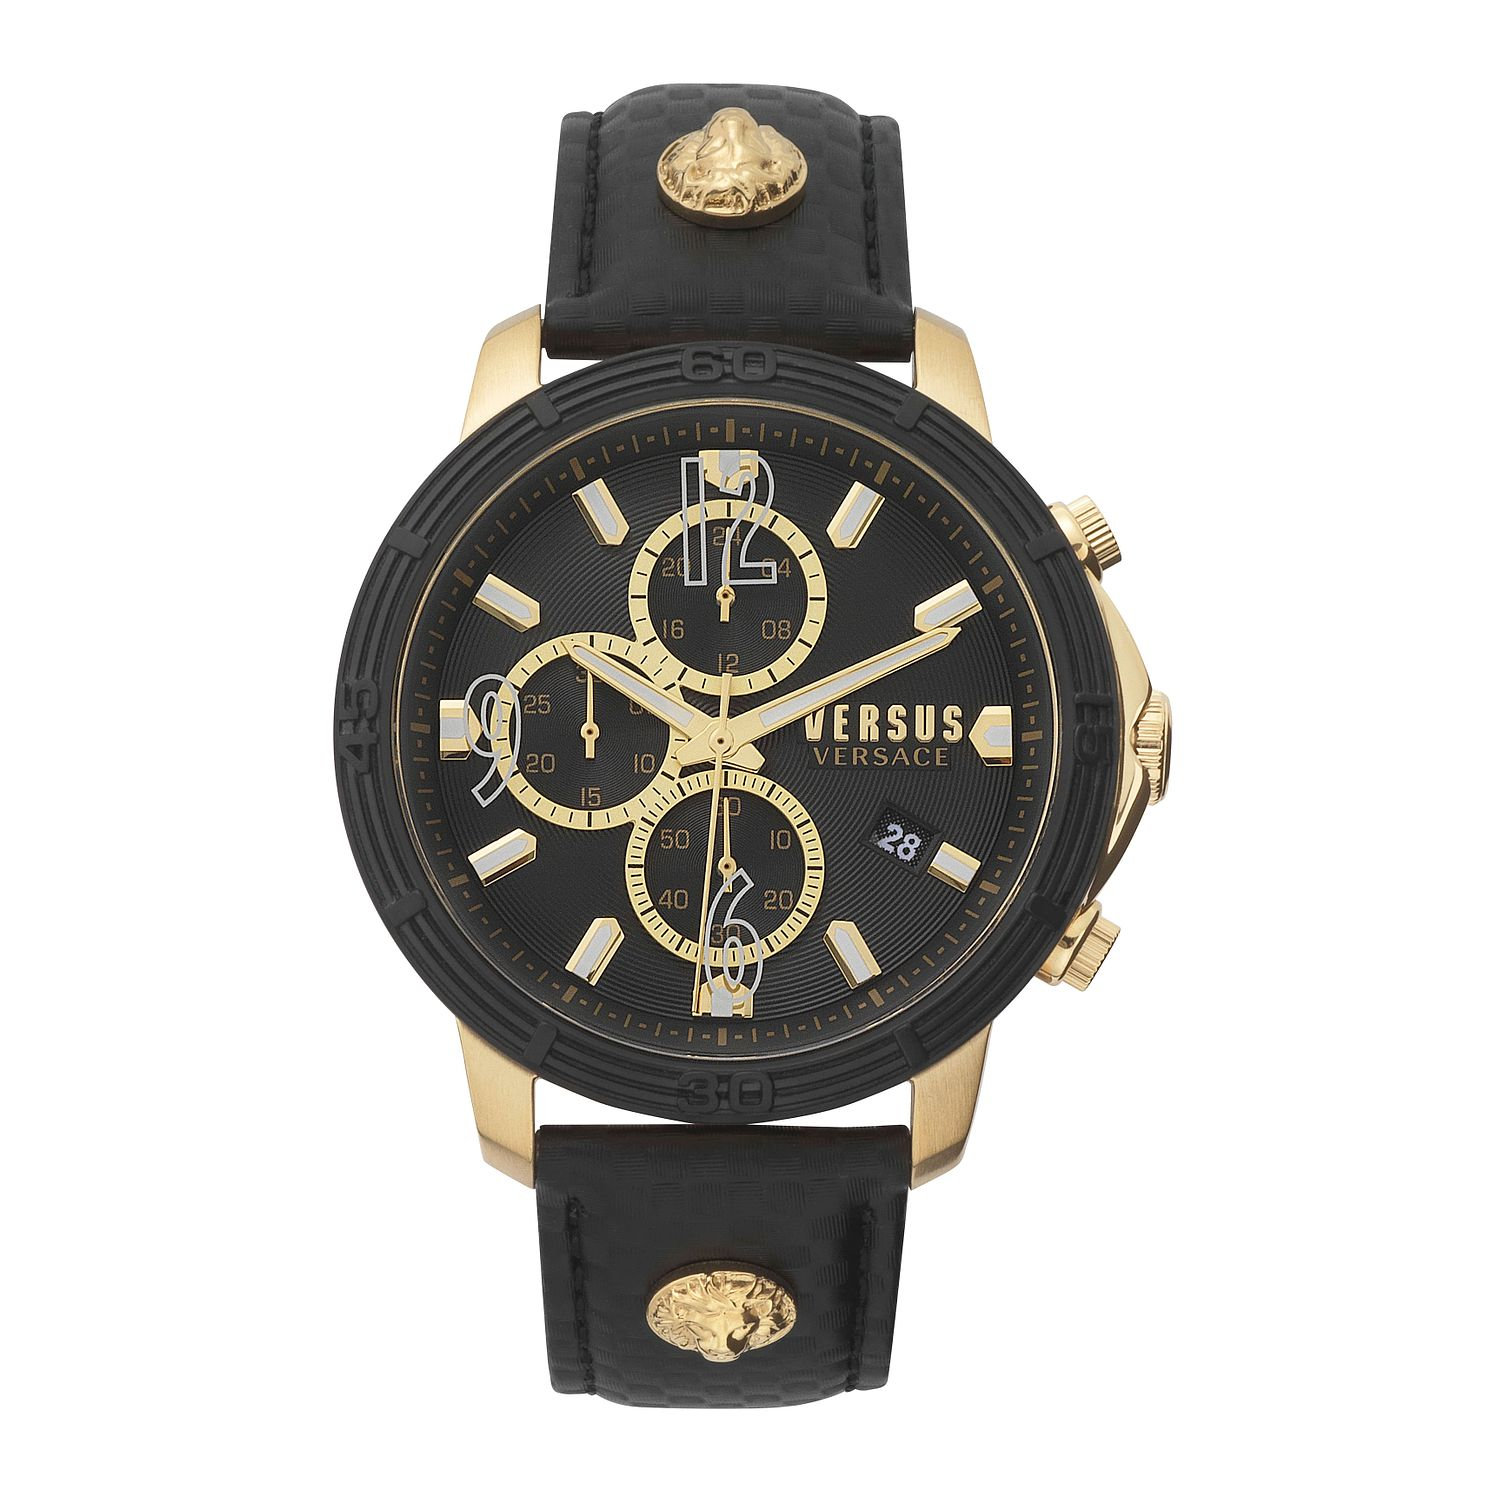 Versus Versace Bicocca Men's Black Leather Strap Watch - Product number 5363632